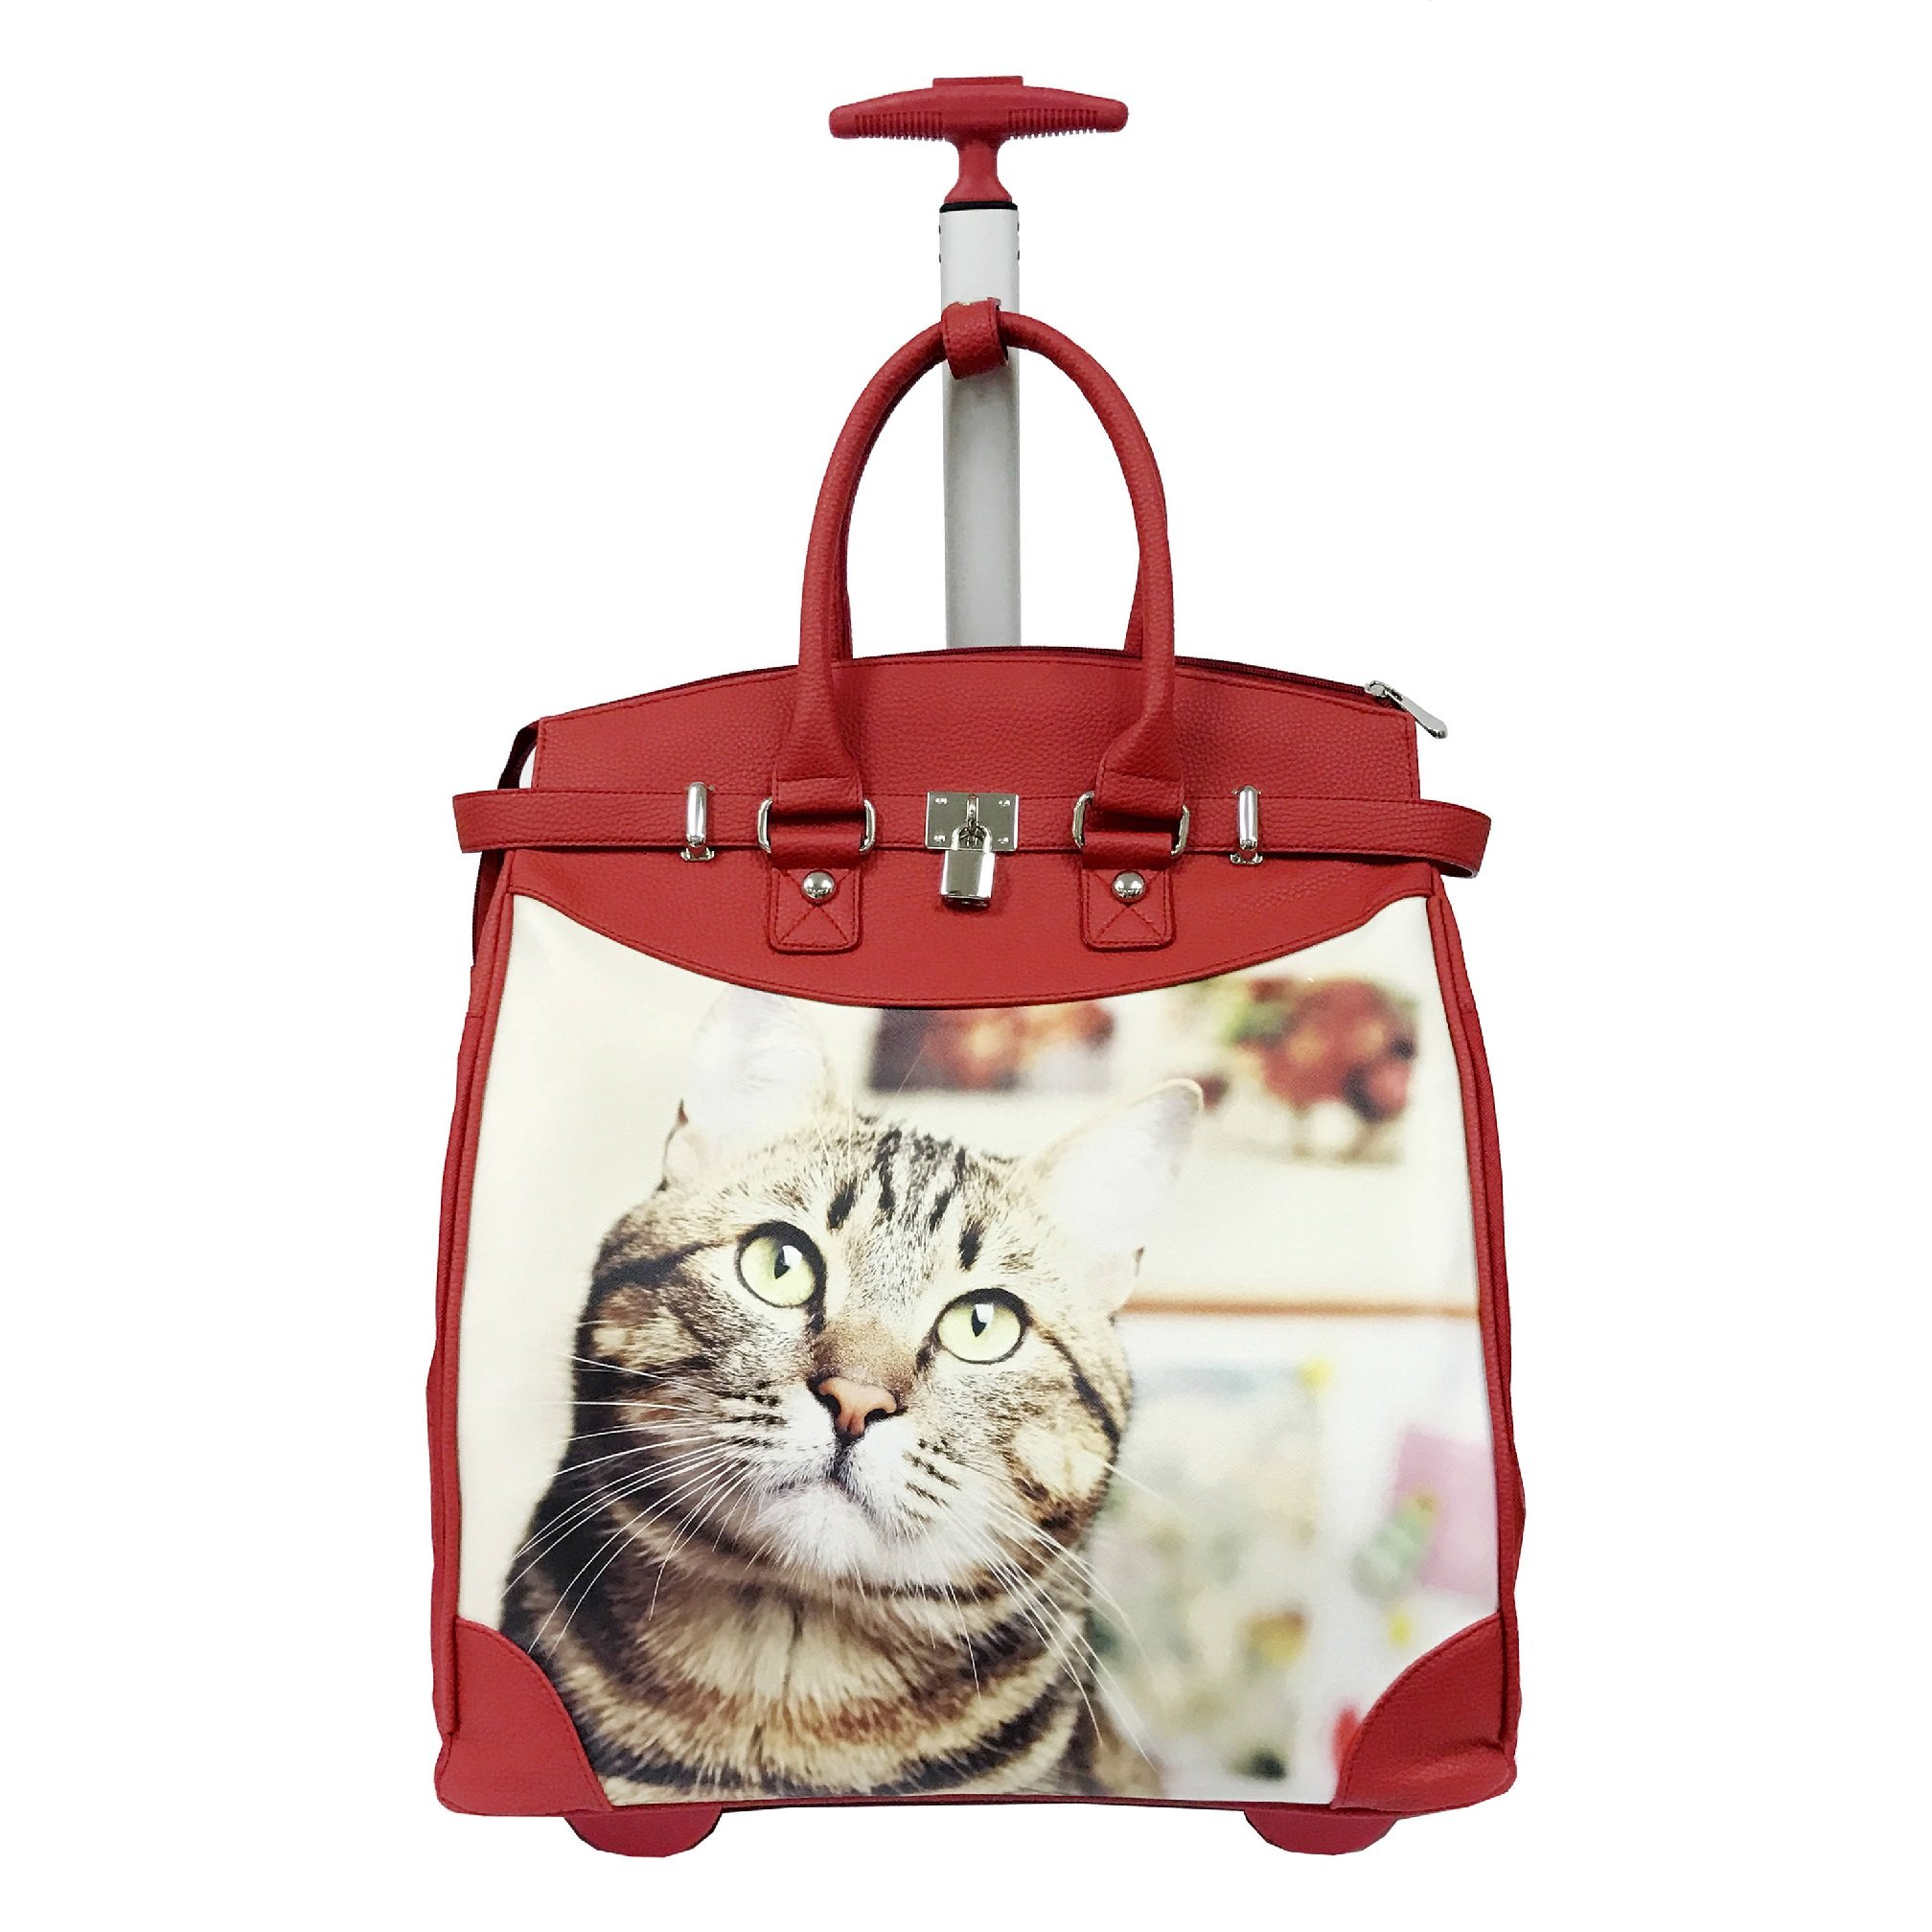 Day Dreaming Kitten Prince Theme Carry On Rolling Foldable Laptop Tote, Graphic Playful House Pet Animals Pattern, Multi Compartment, Fashionable, Checkpoint Friendly Travel Bag, Red, Ivory, Size 14'' by S & E